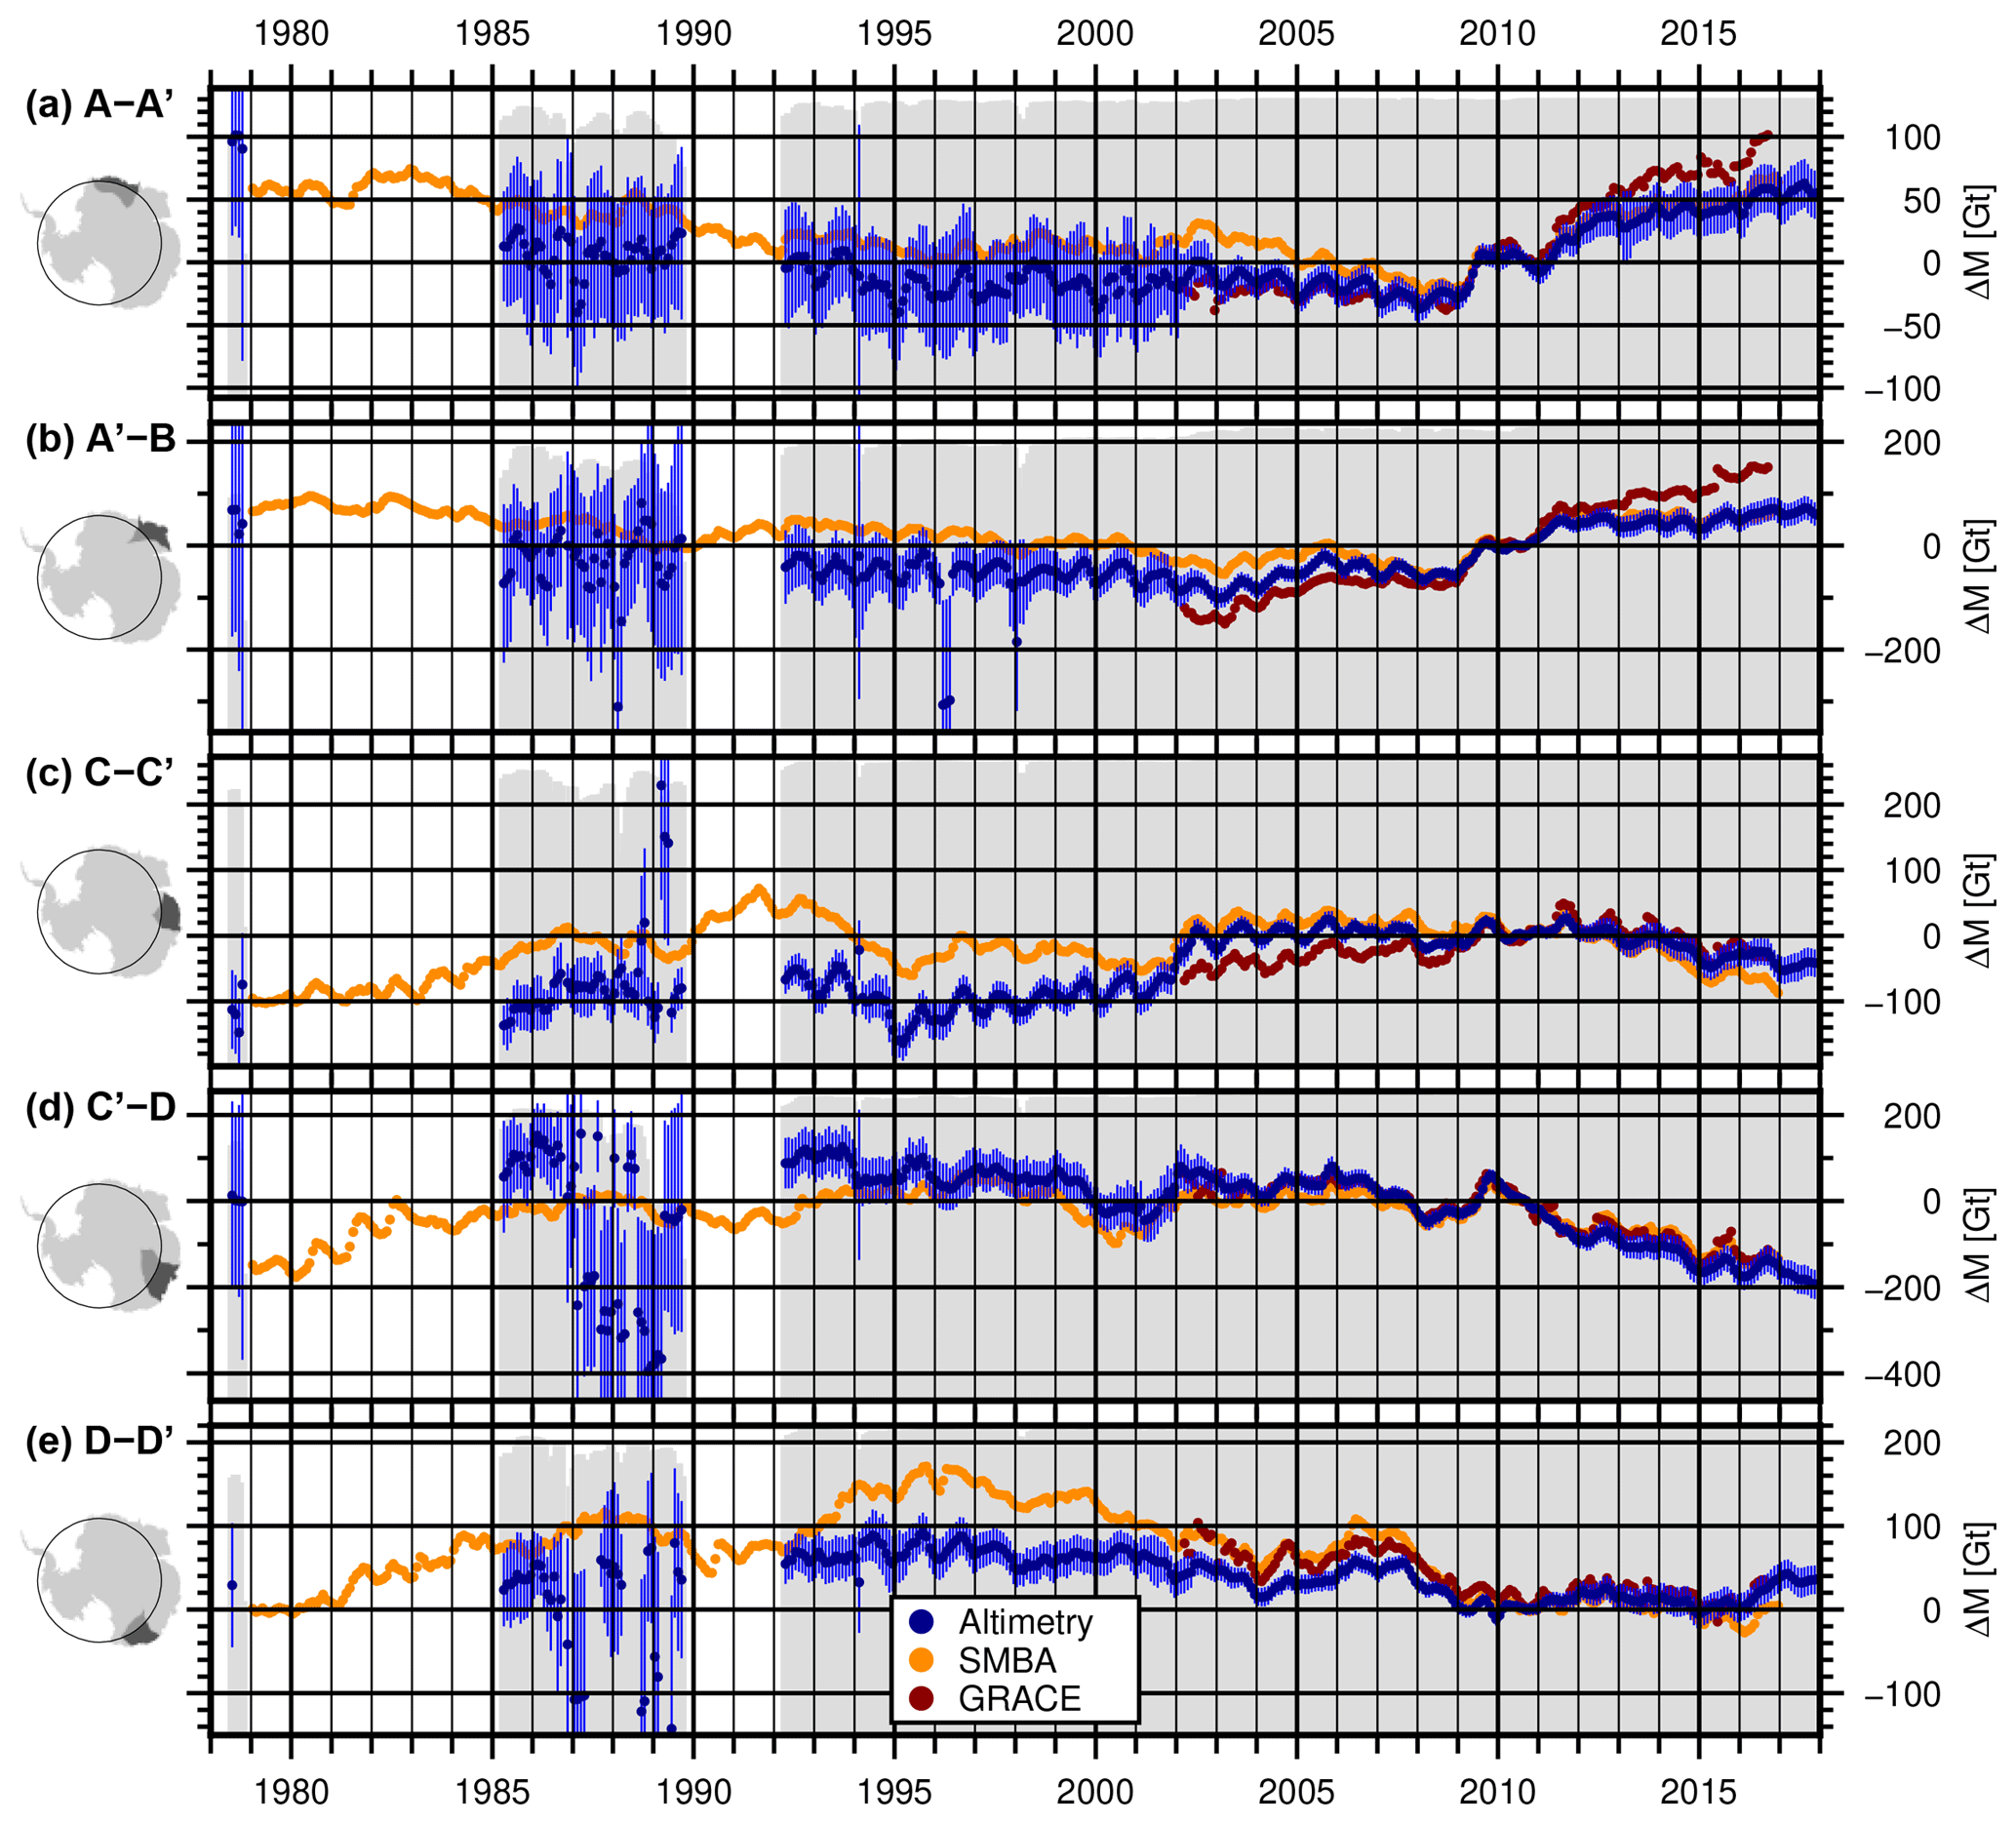 TC - Four decades of Antarctic surface elevation changes